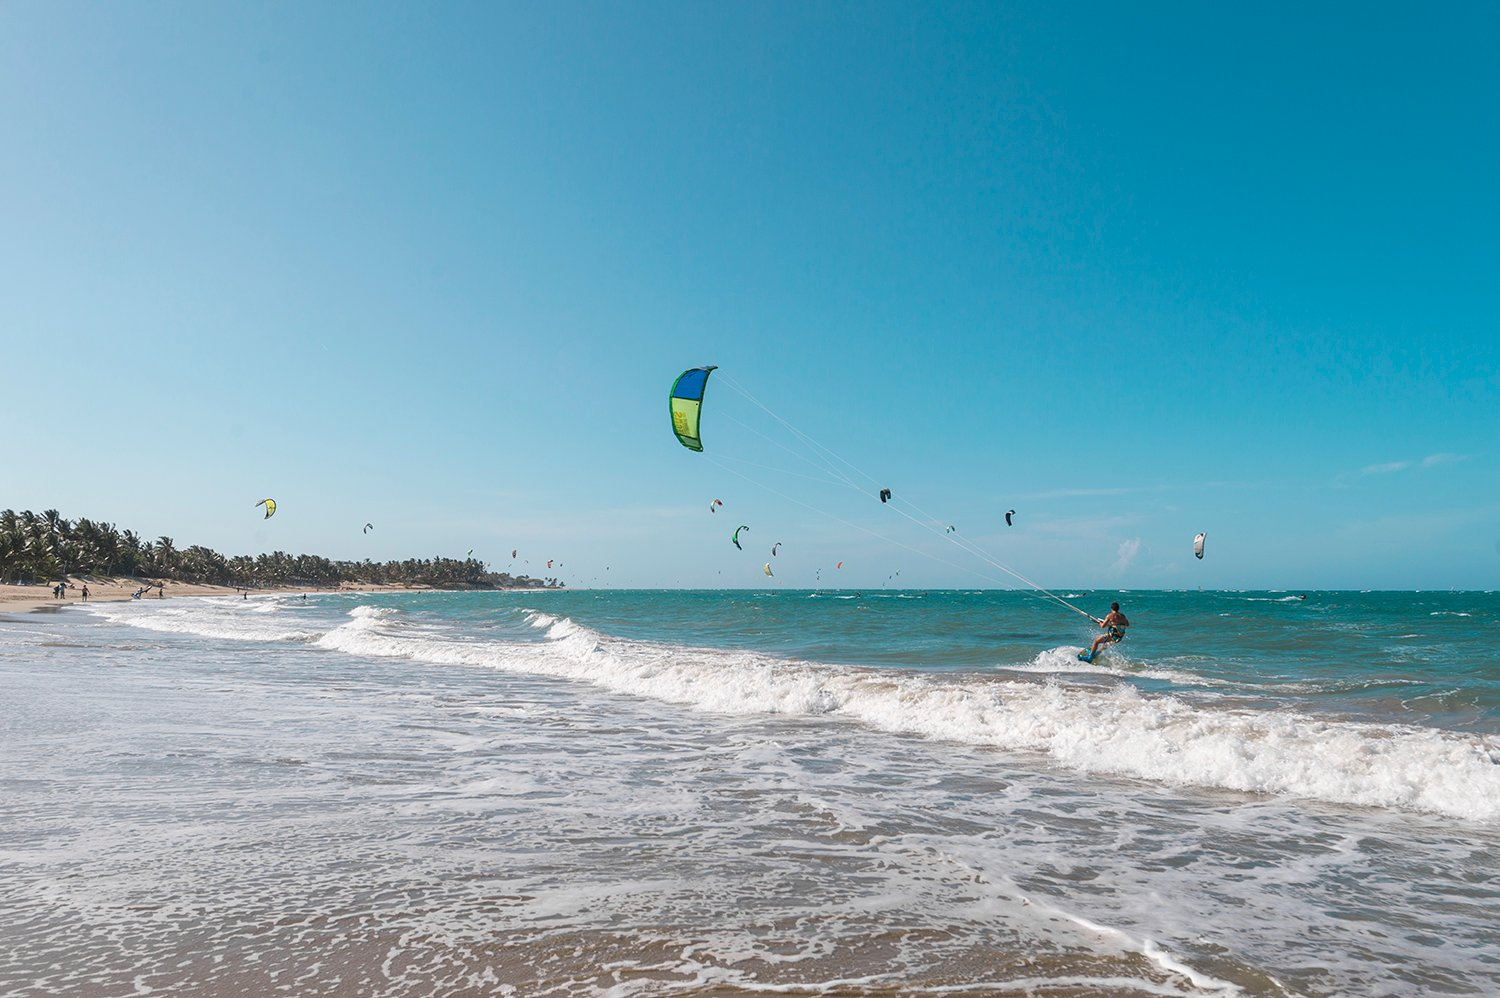 The action-packed beaches of Cabarete, Puerto Plata